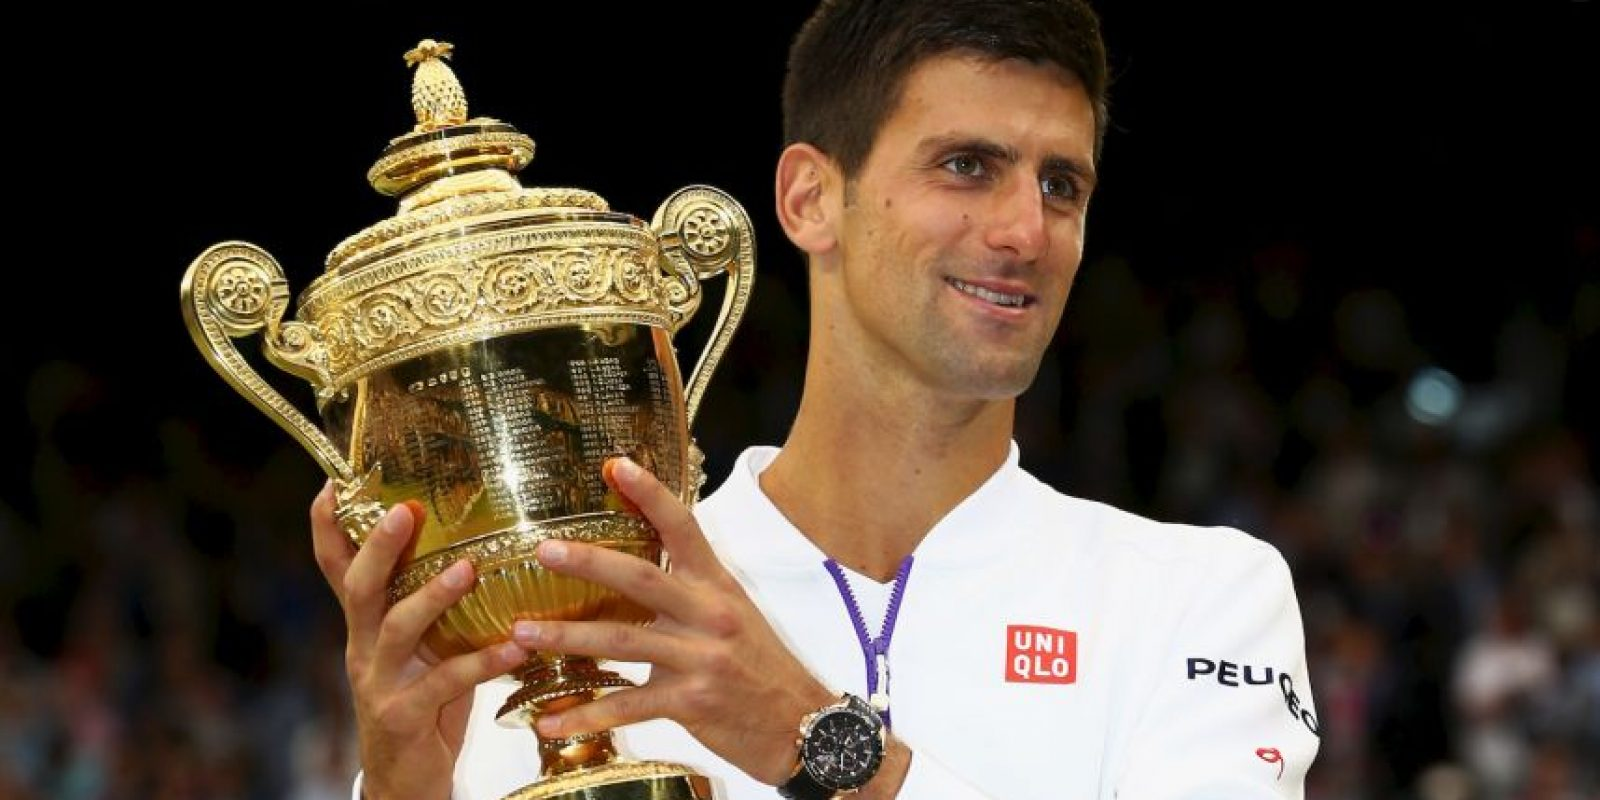 7. Novak Djokovic Foto: Getty Images